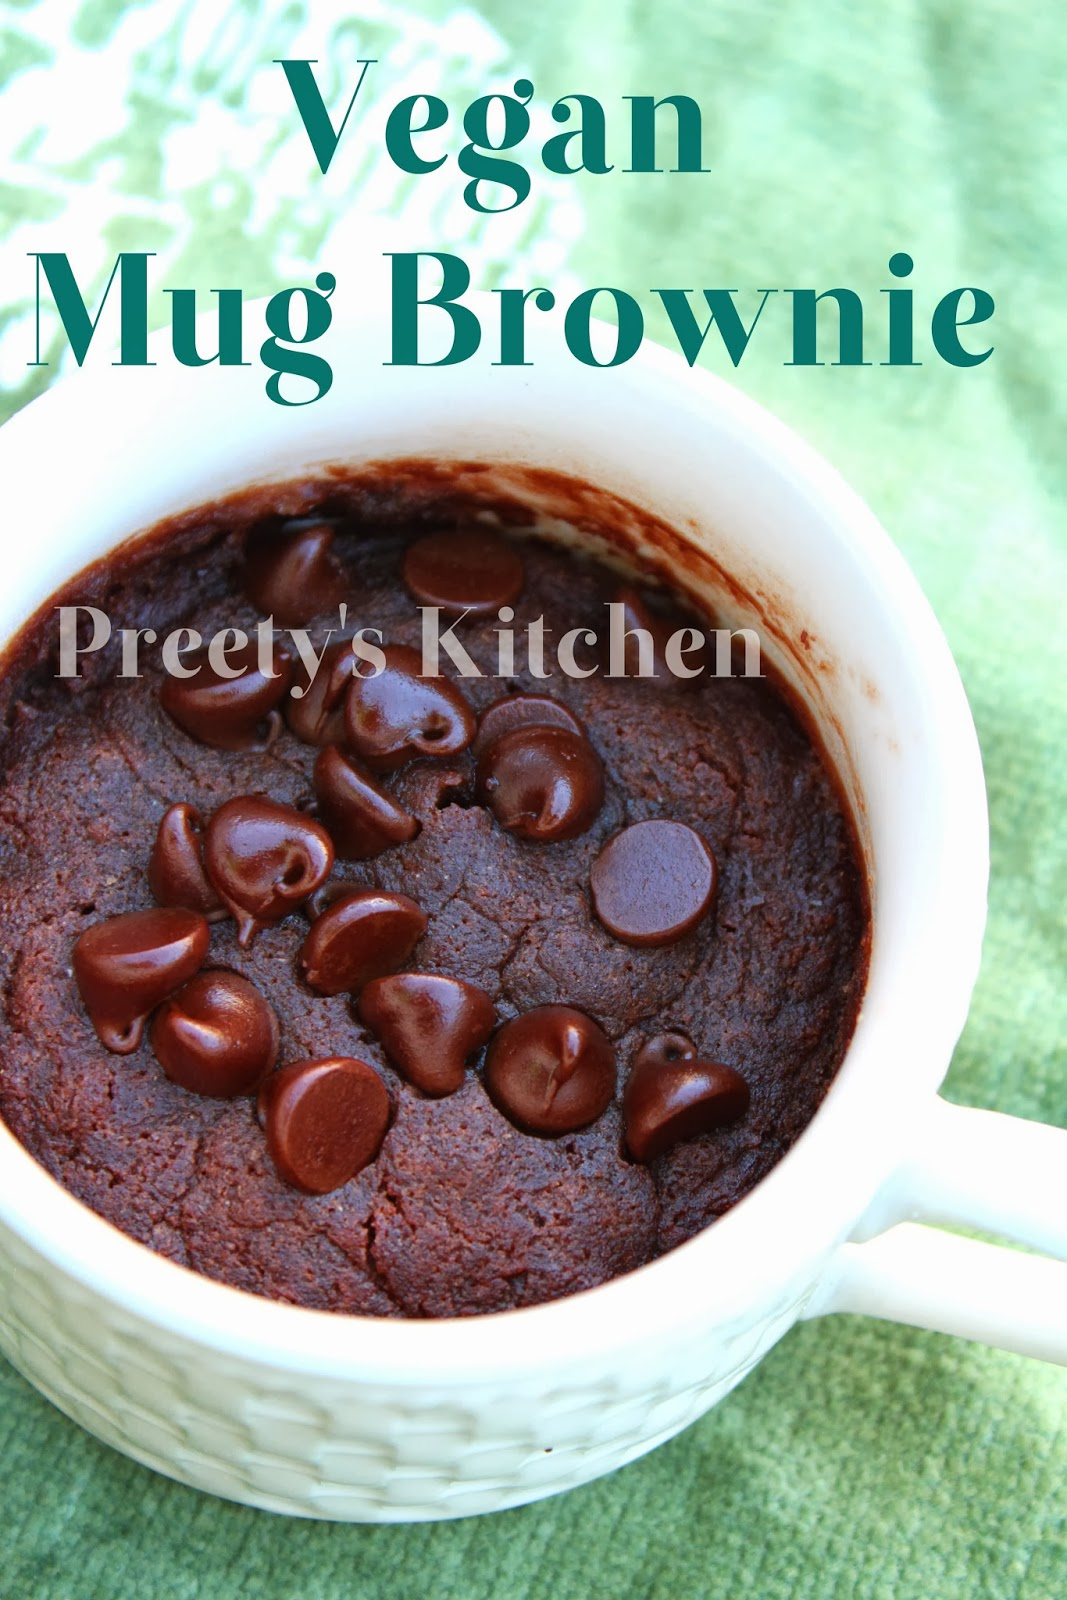 Preety's Kitchen: 8 Easy Vegan Microwave Desserts You Can ...